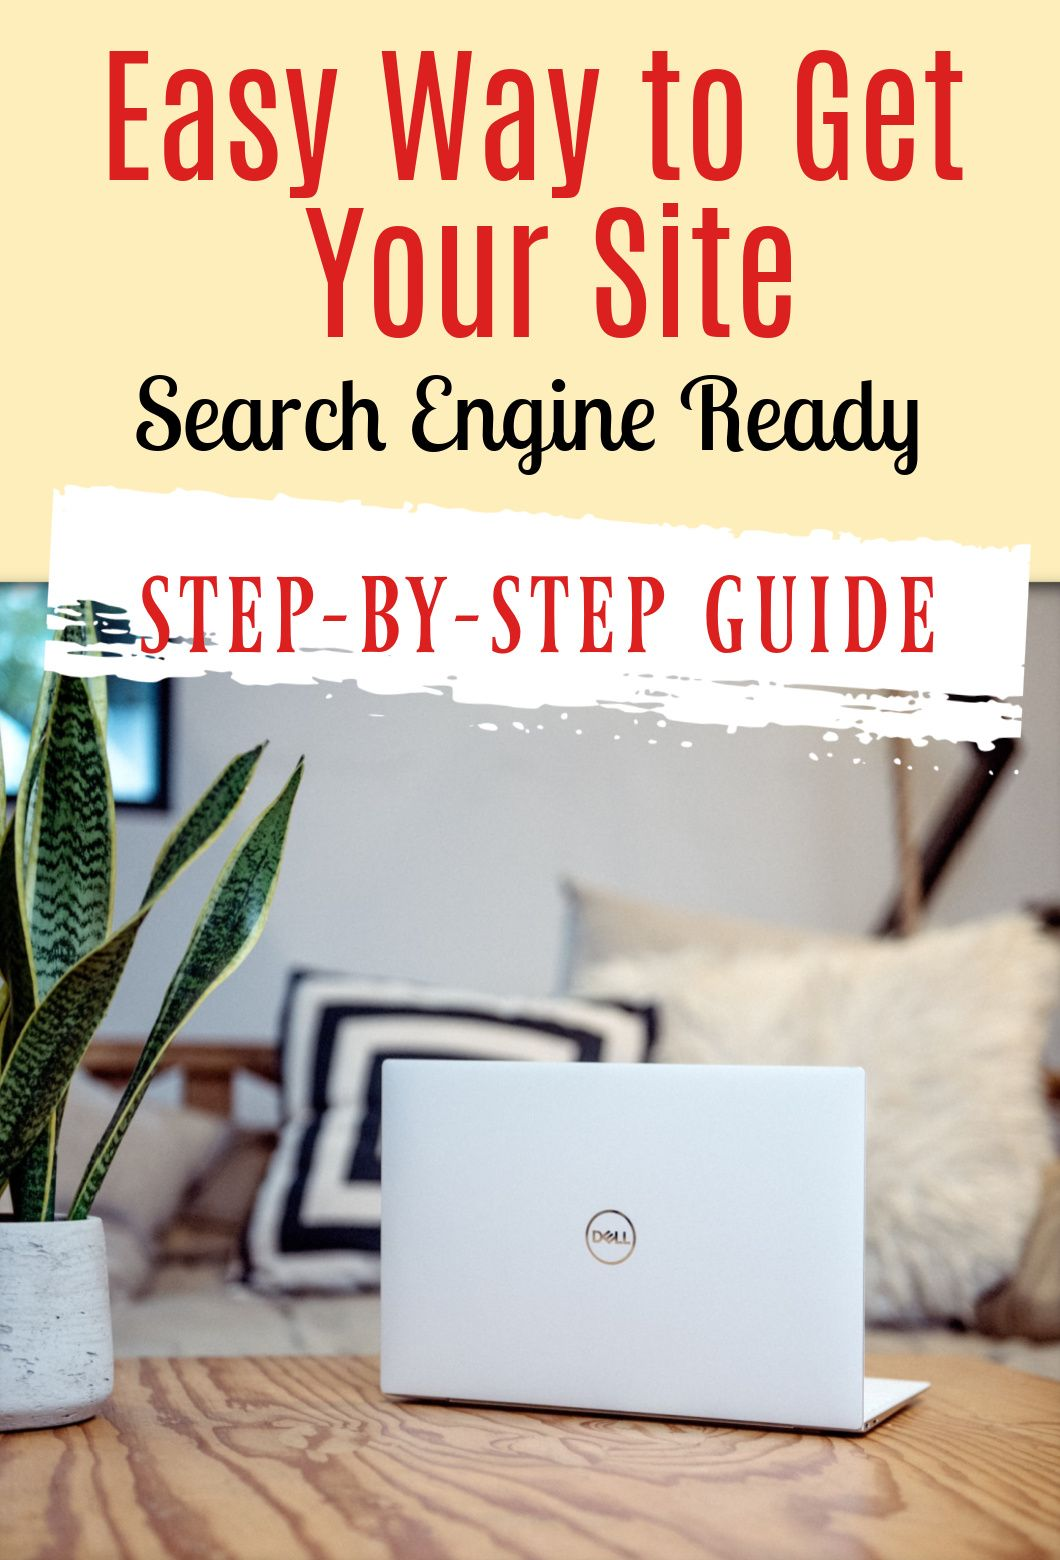 How To Get Your Site Search Engine Ready on Wordpress in